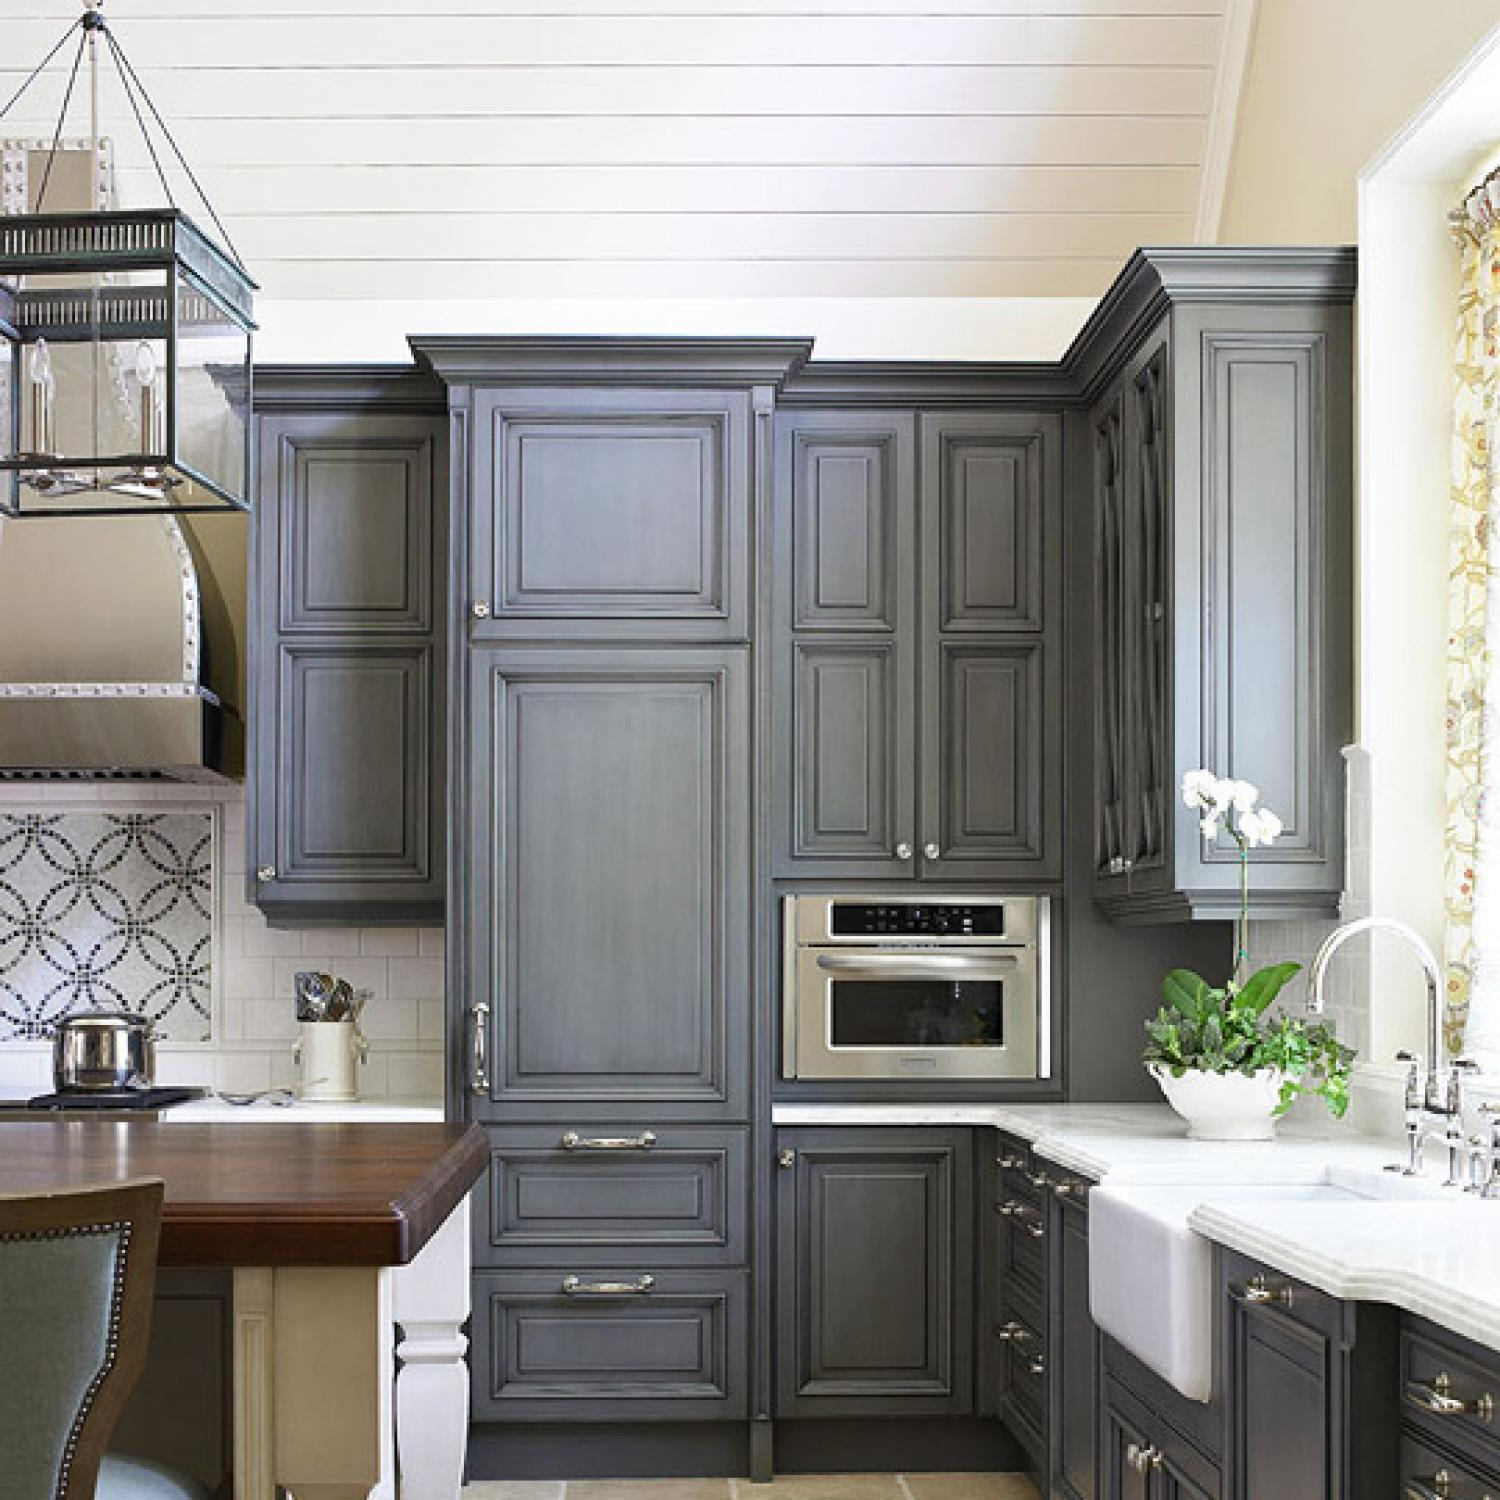 kitchen cabinets with furniture style flair traditional home rh traditionalhome com kitchen cabinets furniture design kitchen cabinets furniture design